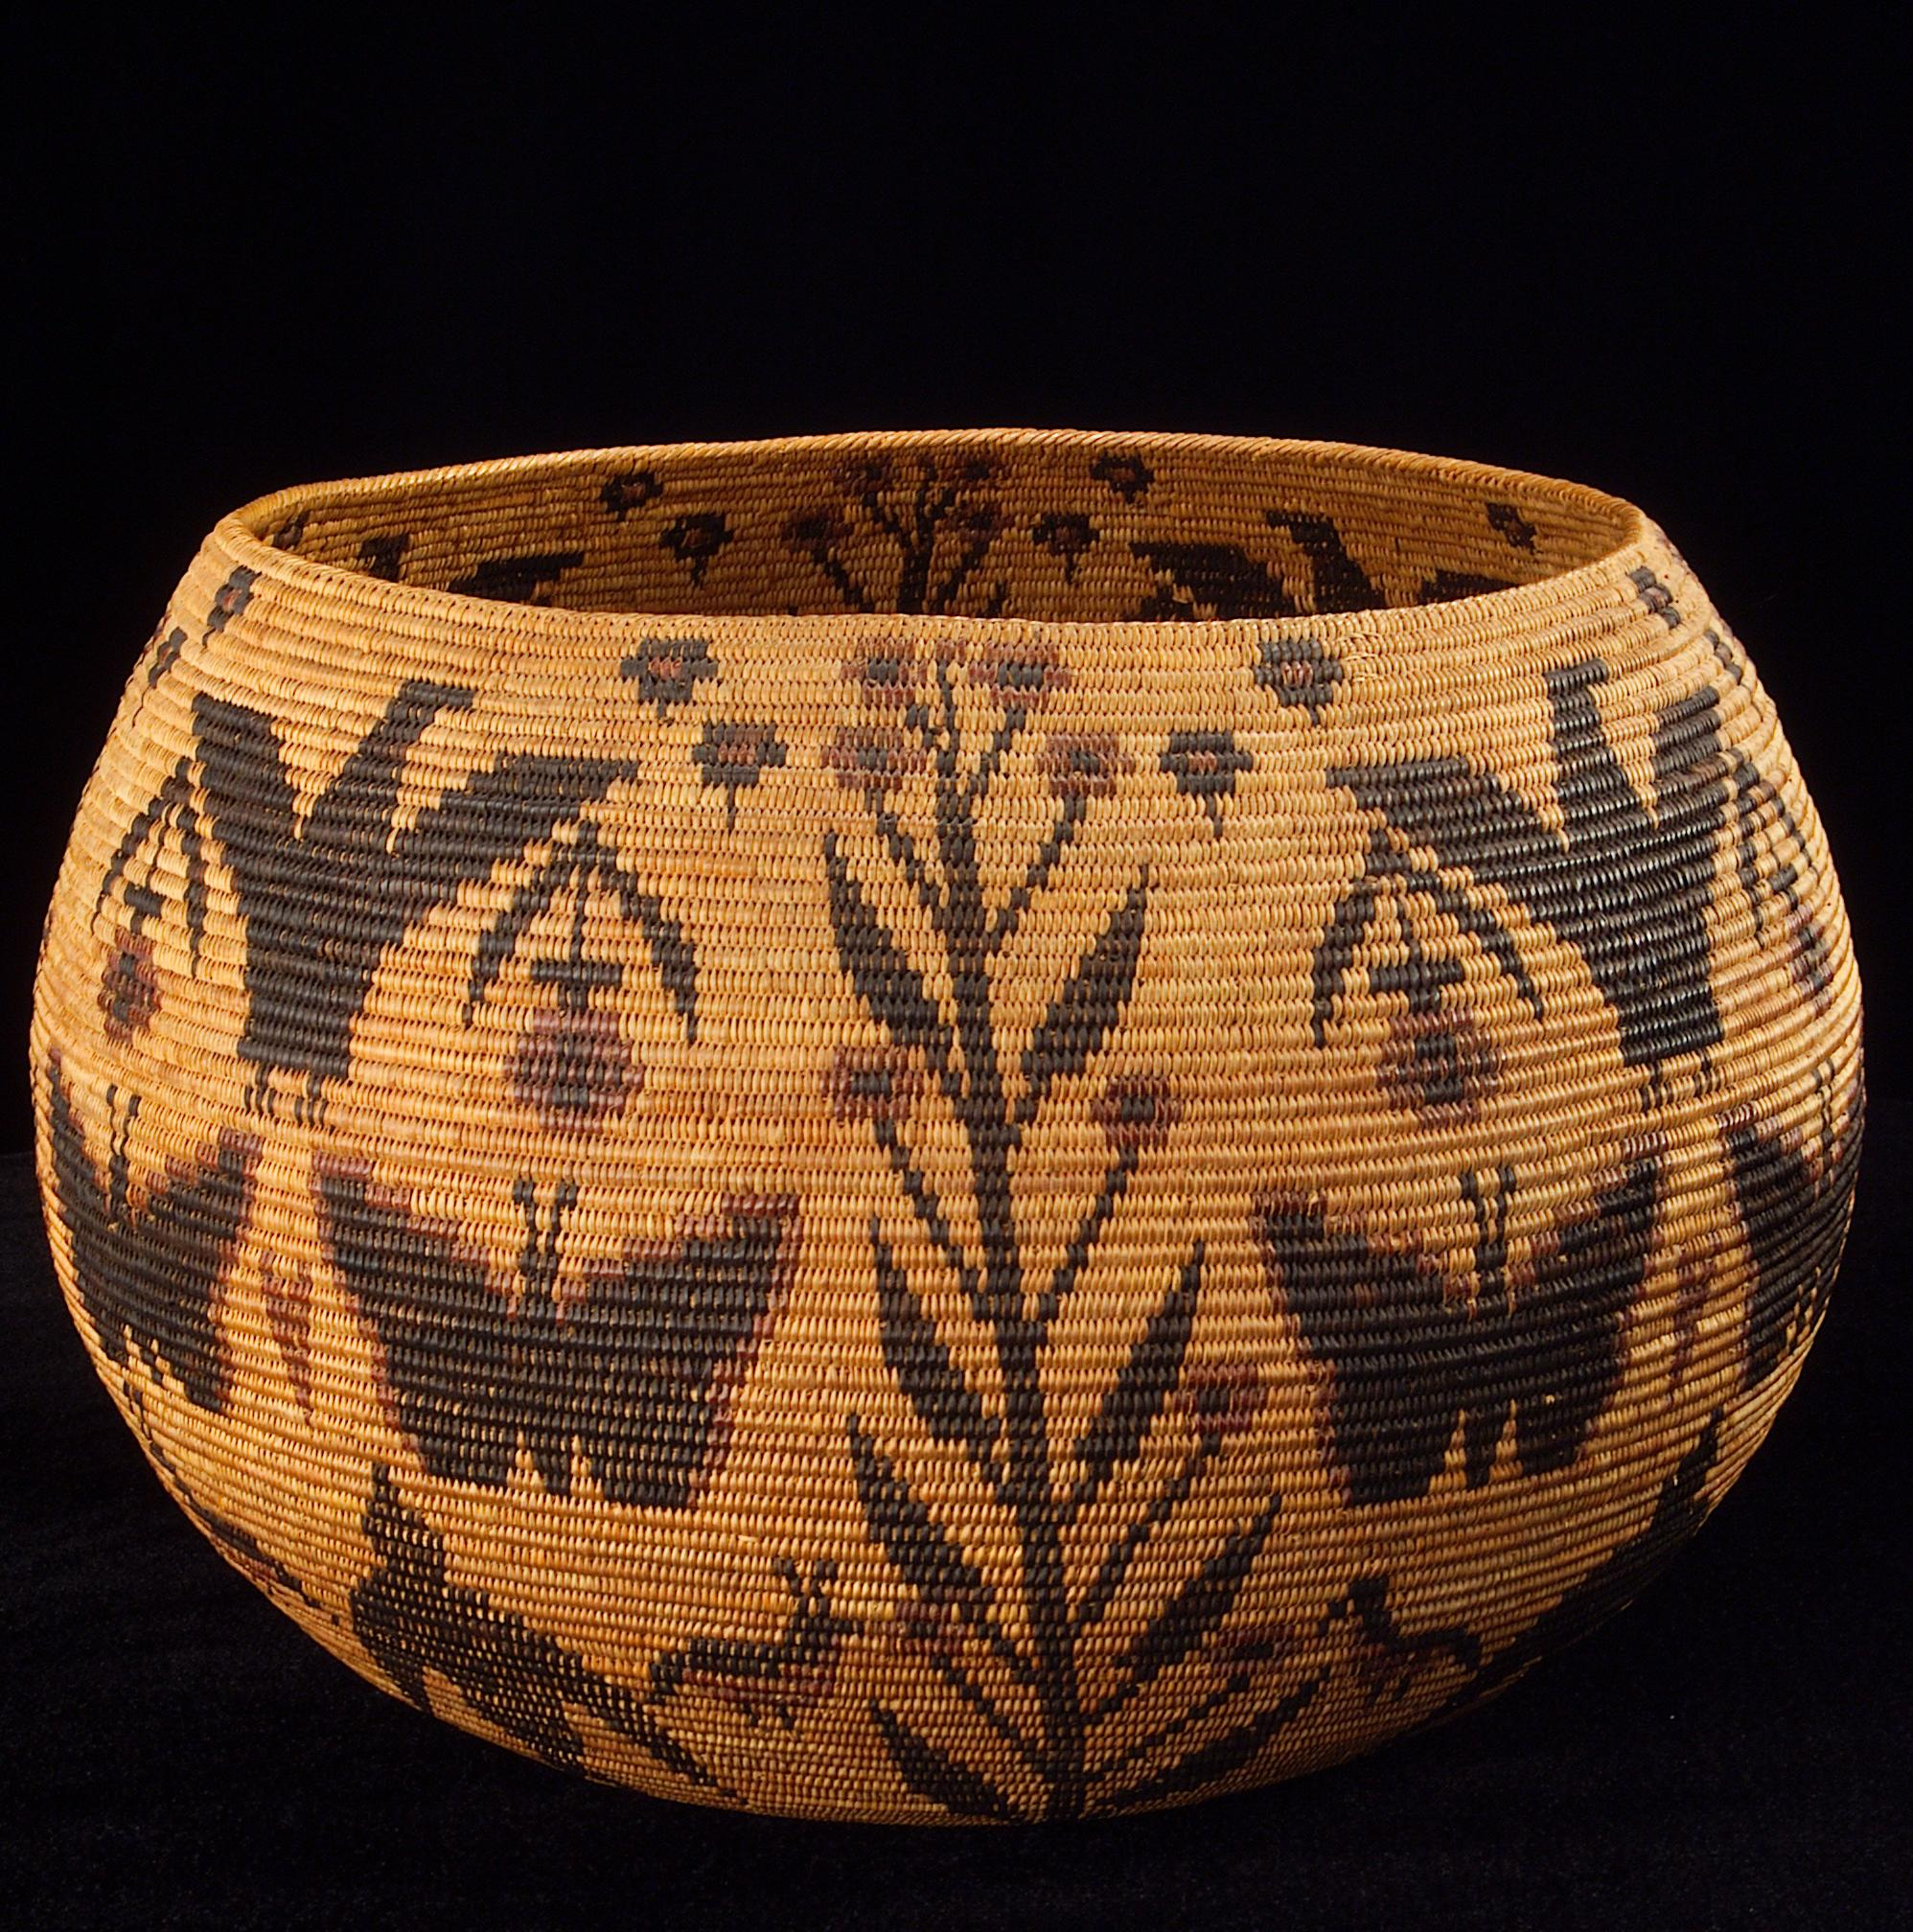 Basket Weaving Origin : Miwok art crafts california indians